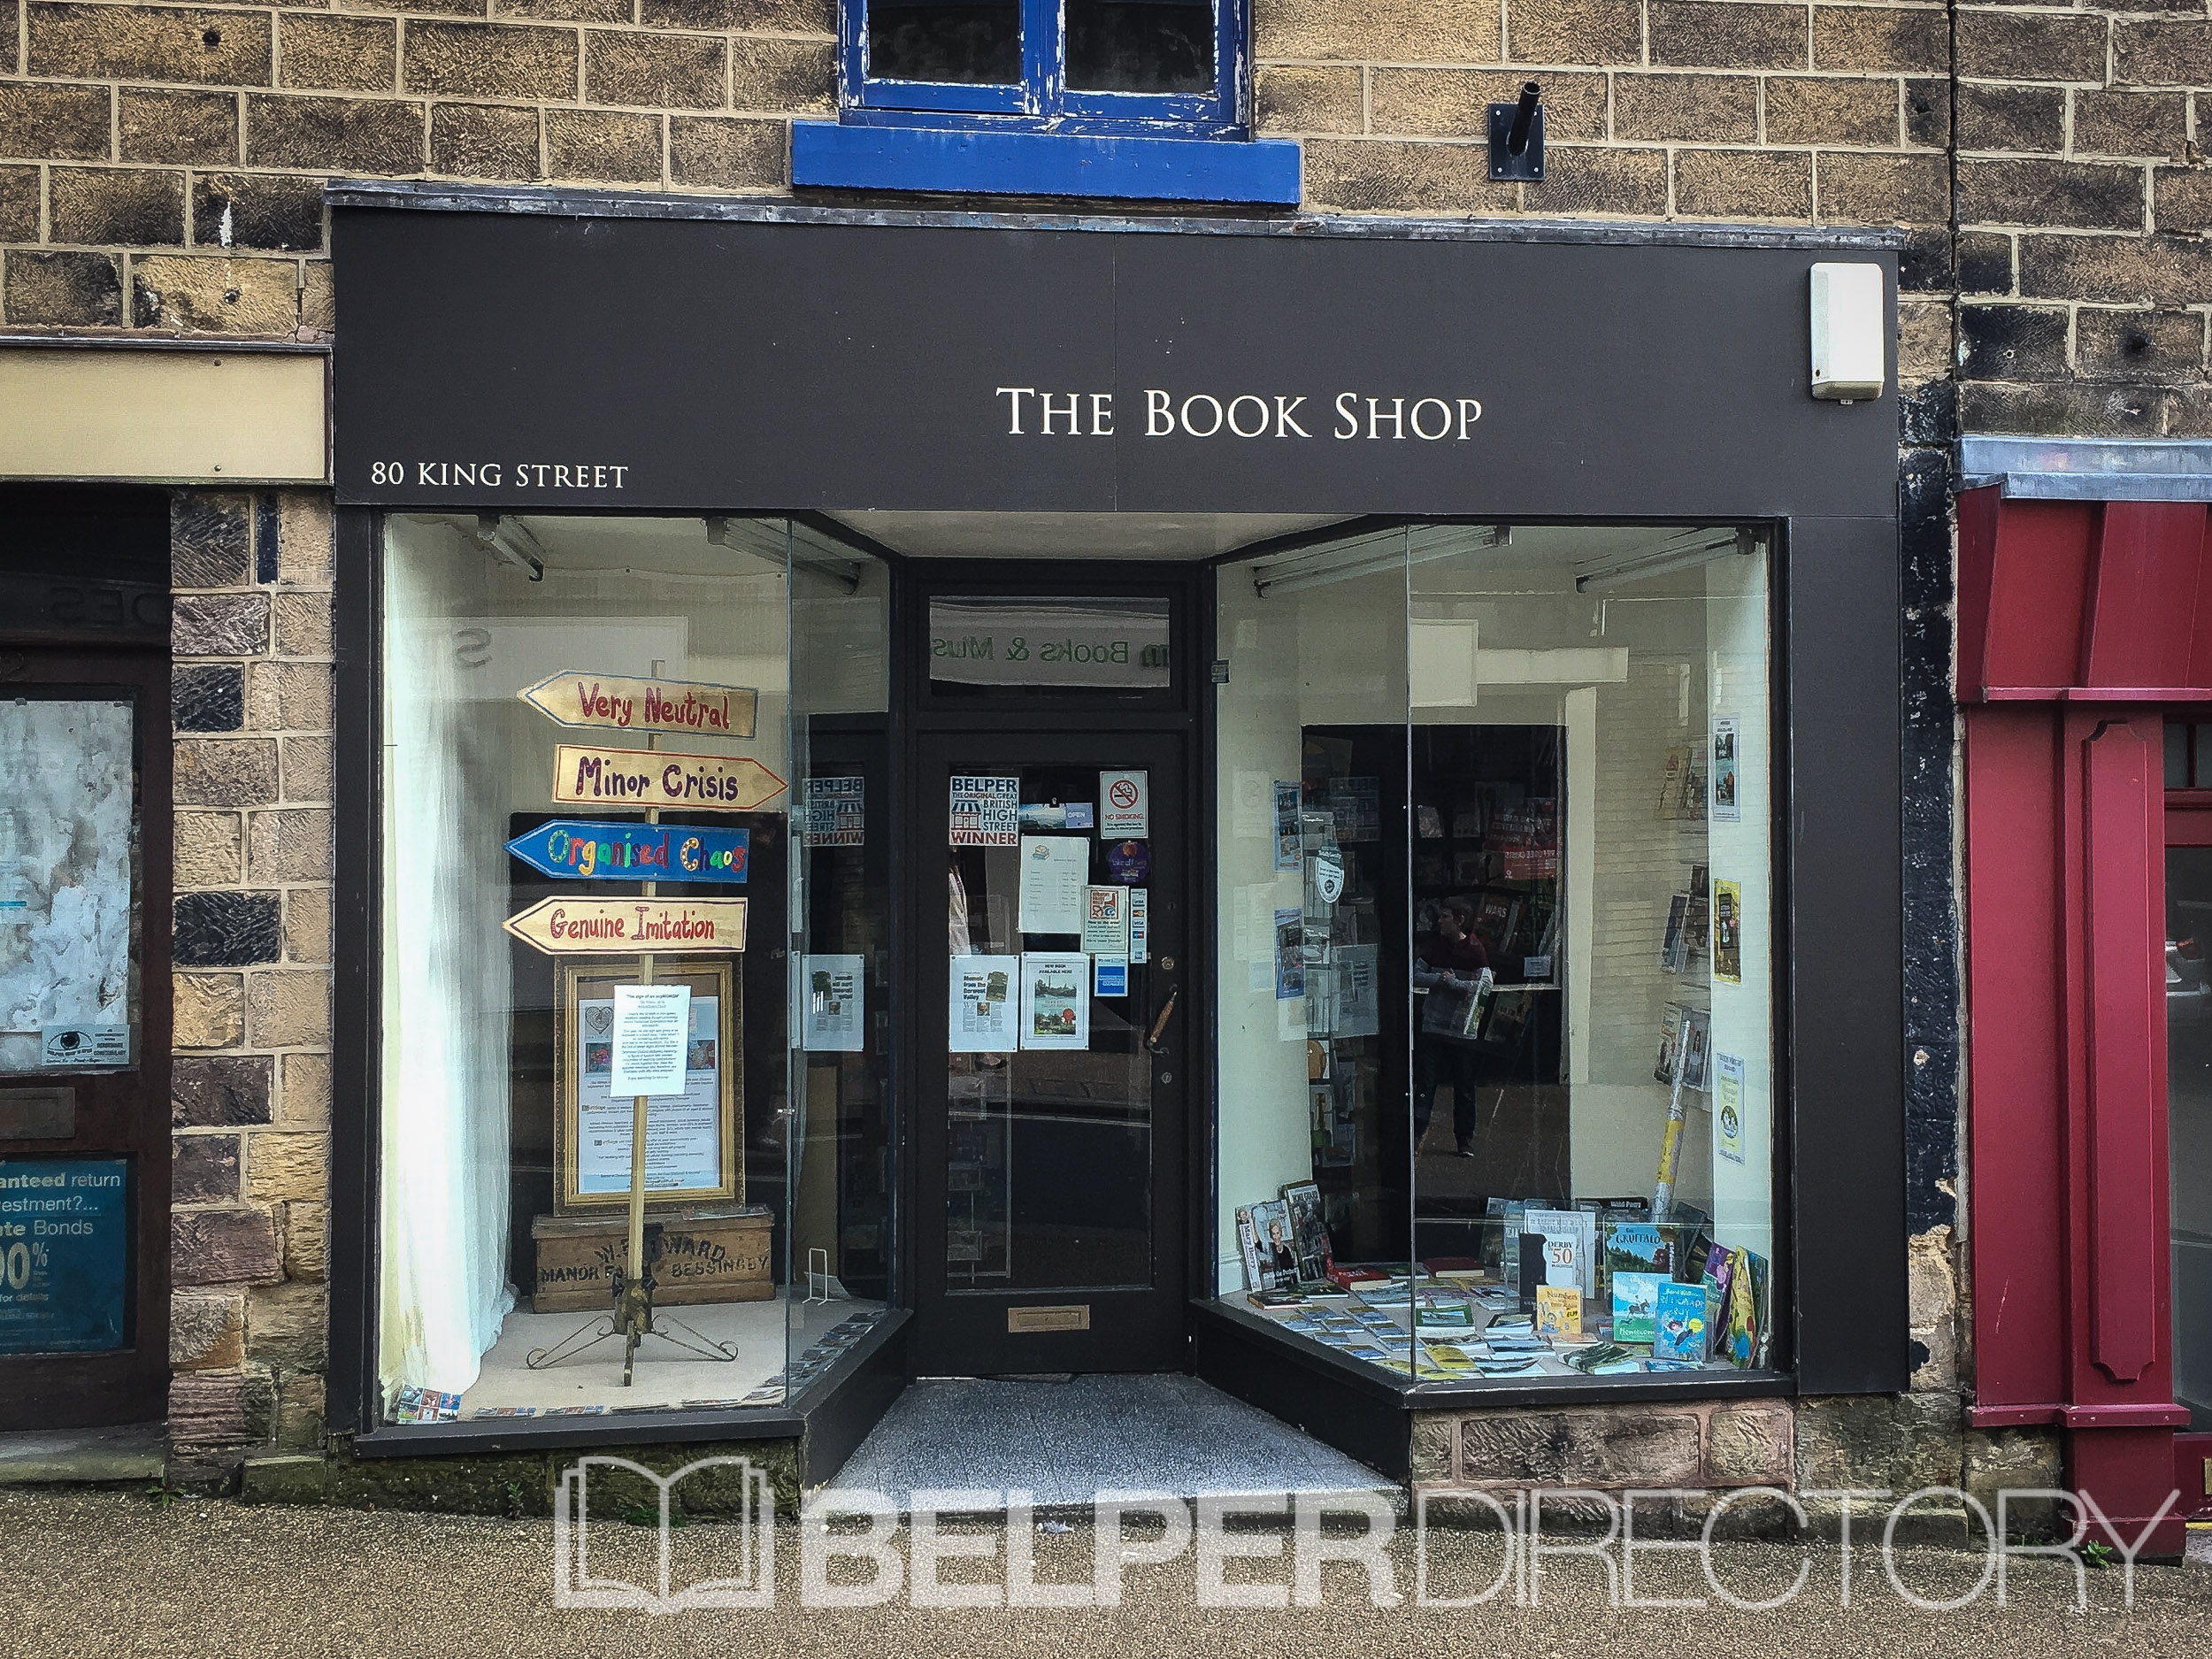 The Book Shop on Inter Search